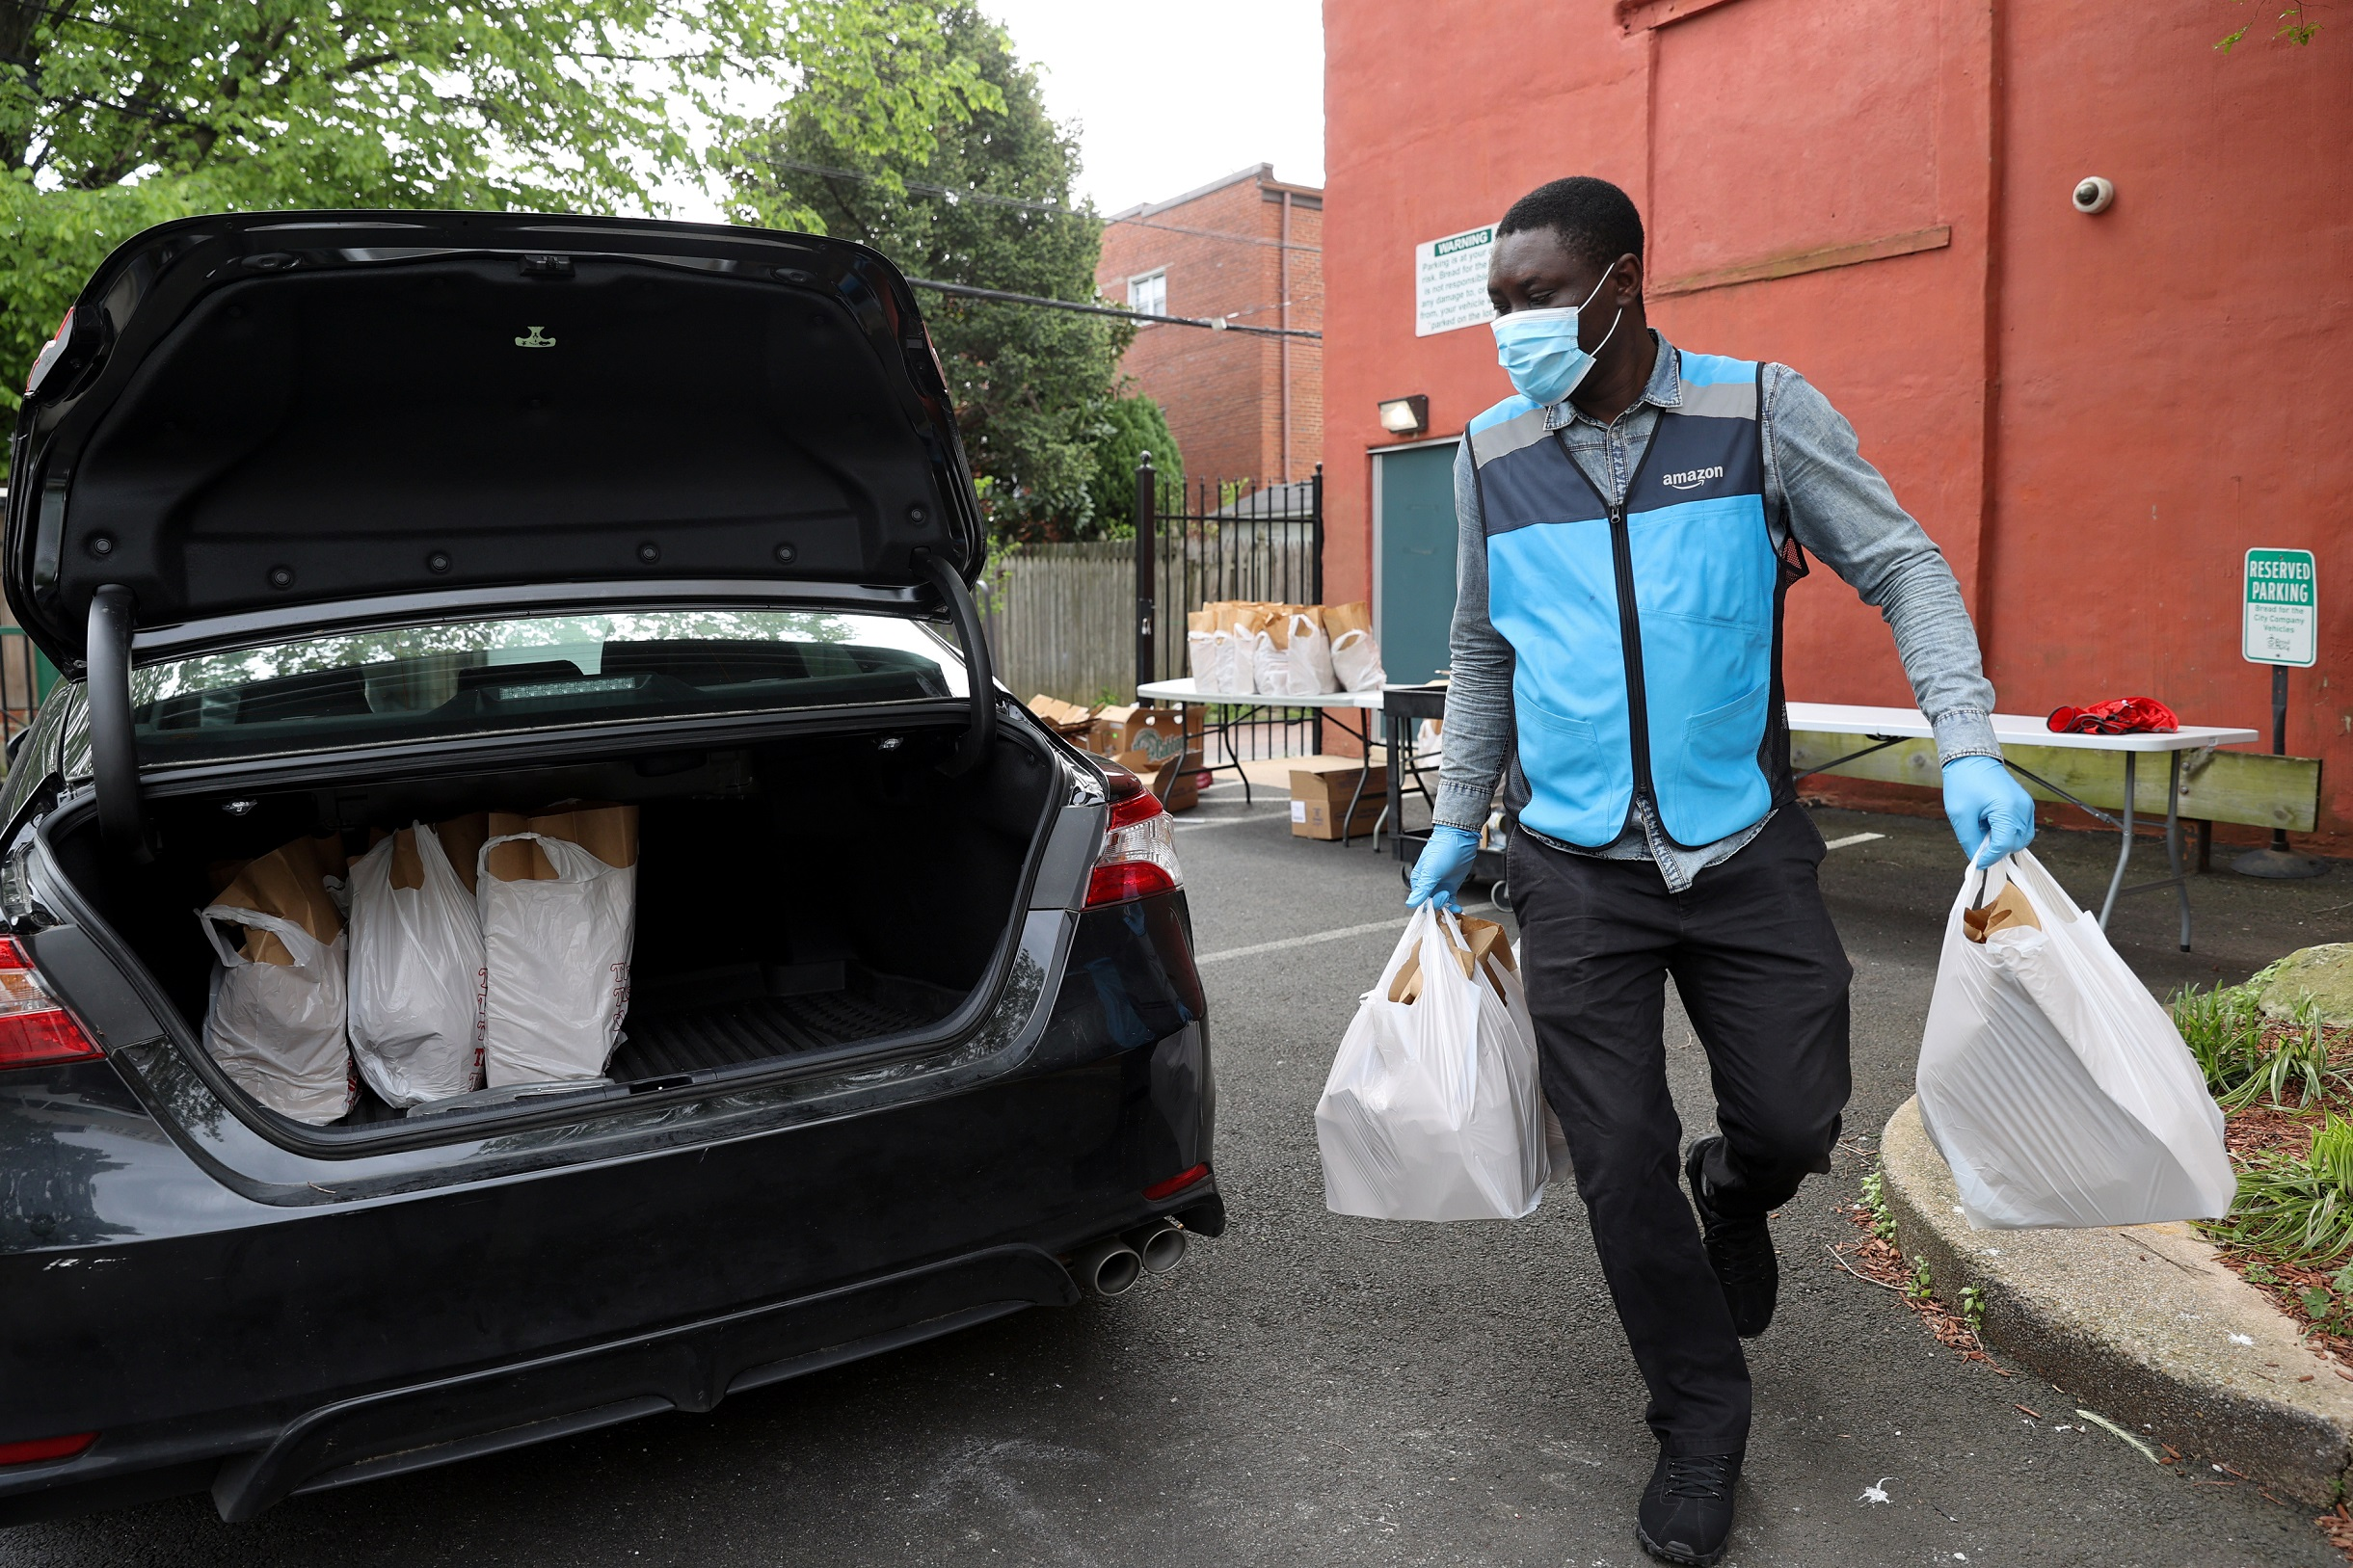 Contract drivers paid by Amazon, including Ayodeji Akinsanya, collect bags of free groceries to deliver from the Bread for the City social services charity during the coronavirus disease (COVID-19) outbreak, in Washington, U.S. May 5, 2020. The charity is sending out as many as 500 or 600 bags a day using the drivers. REUTERS/Jonathan Ernst